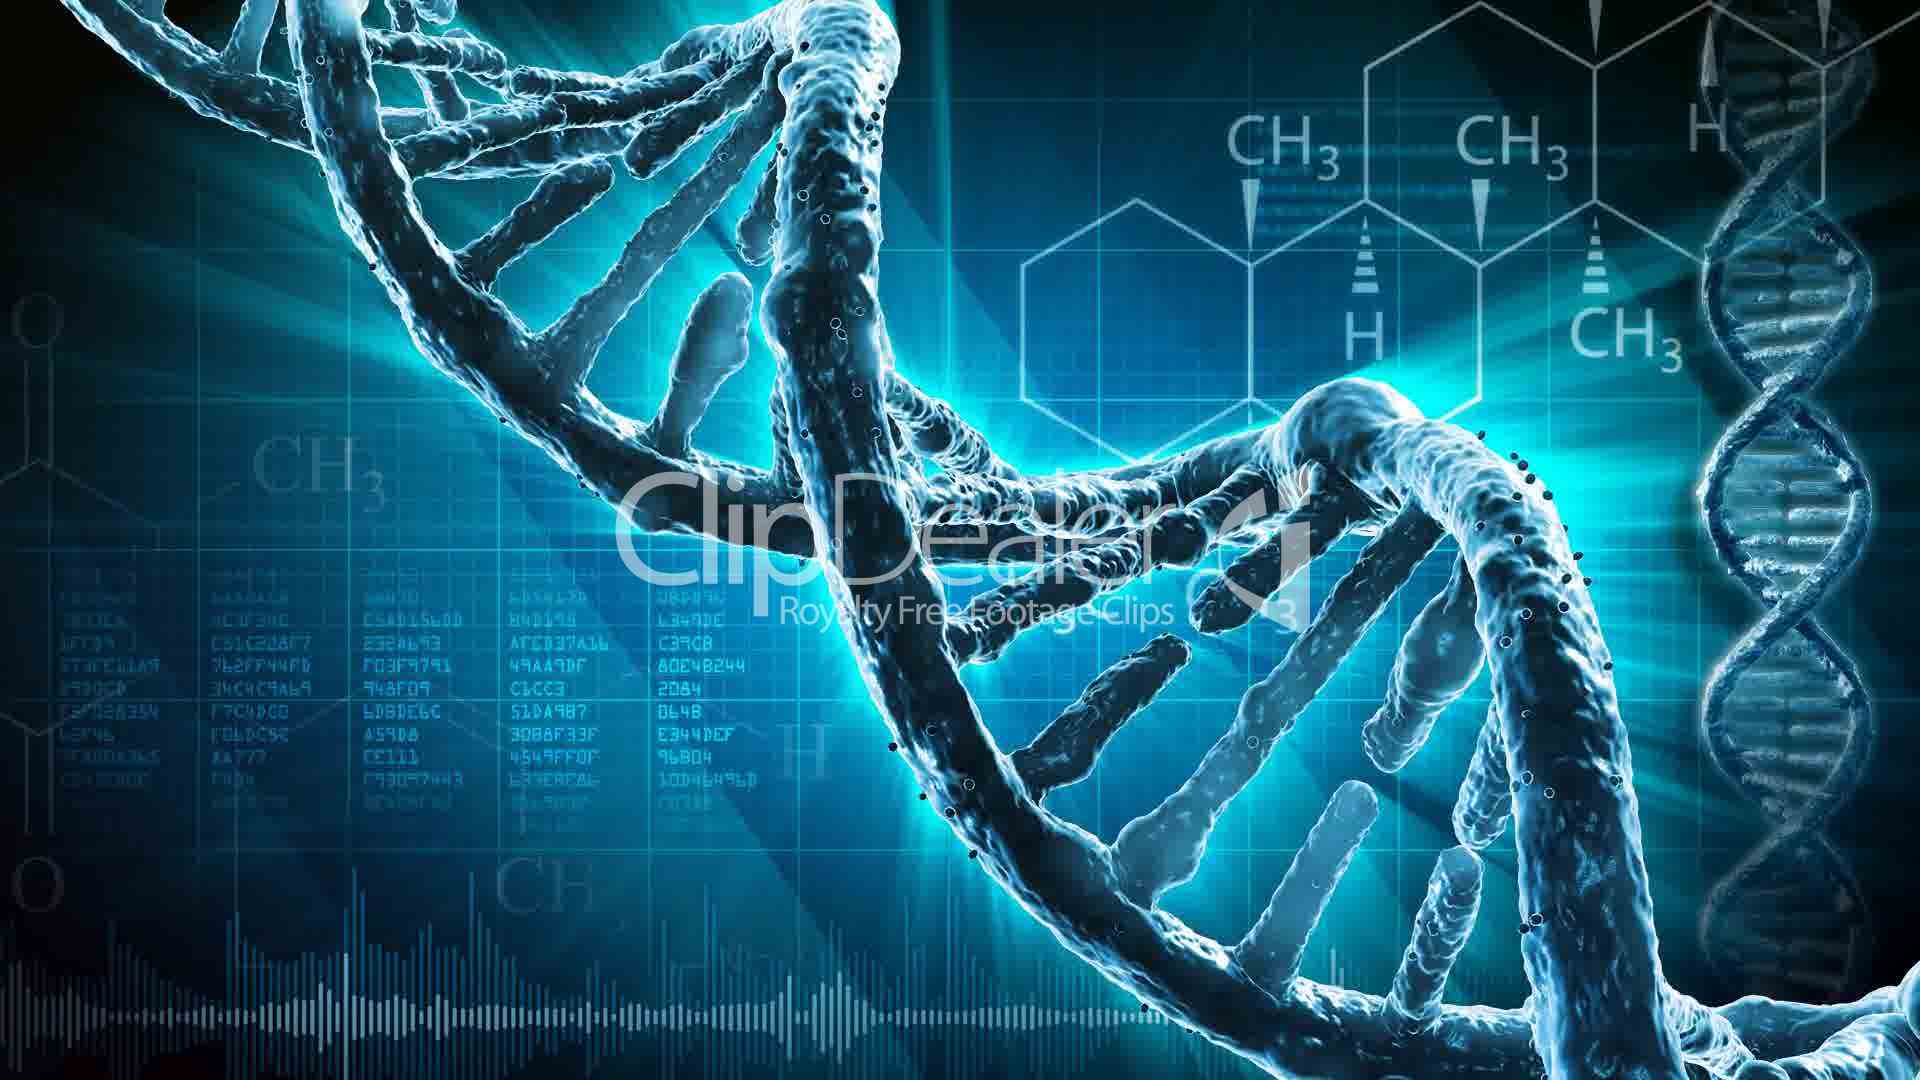 Animation Hd Wallpapers 1080p Dna Strand Royalty Free Video And Stock Footage